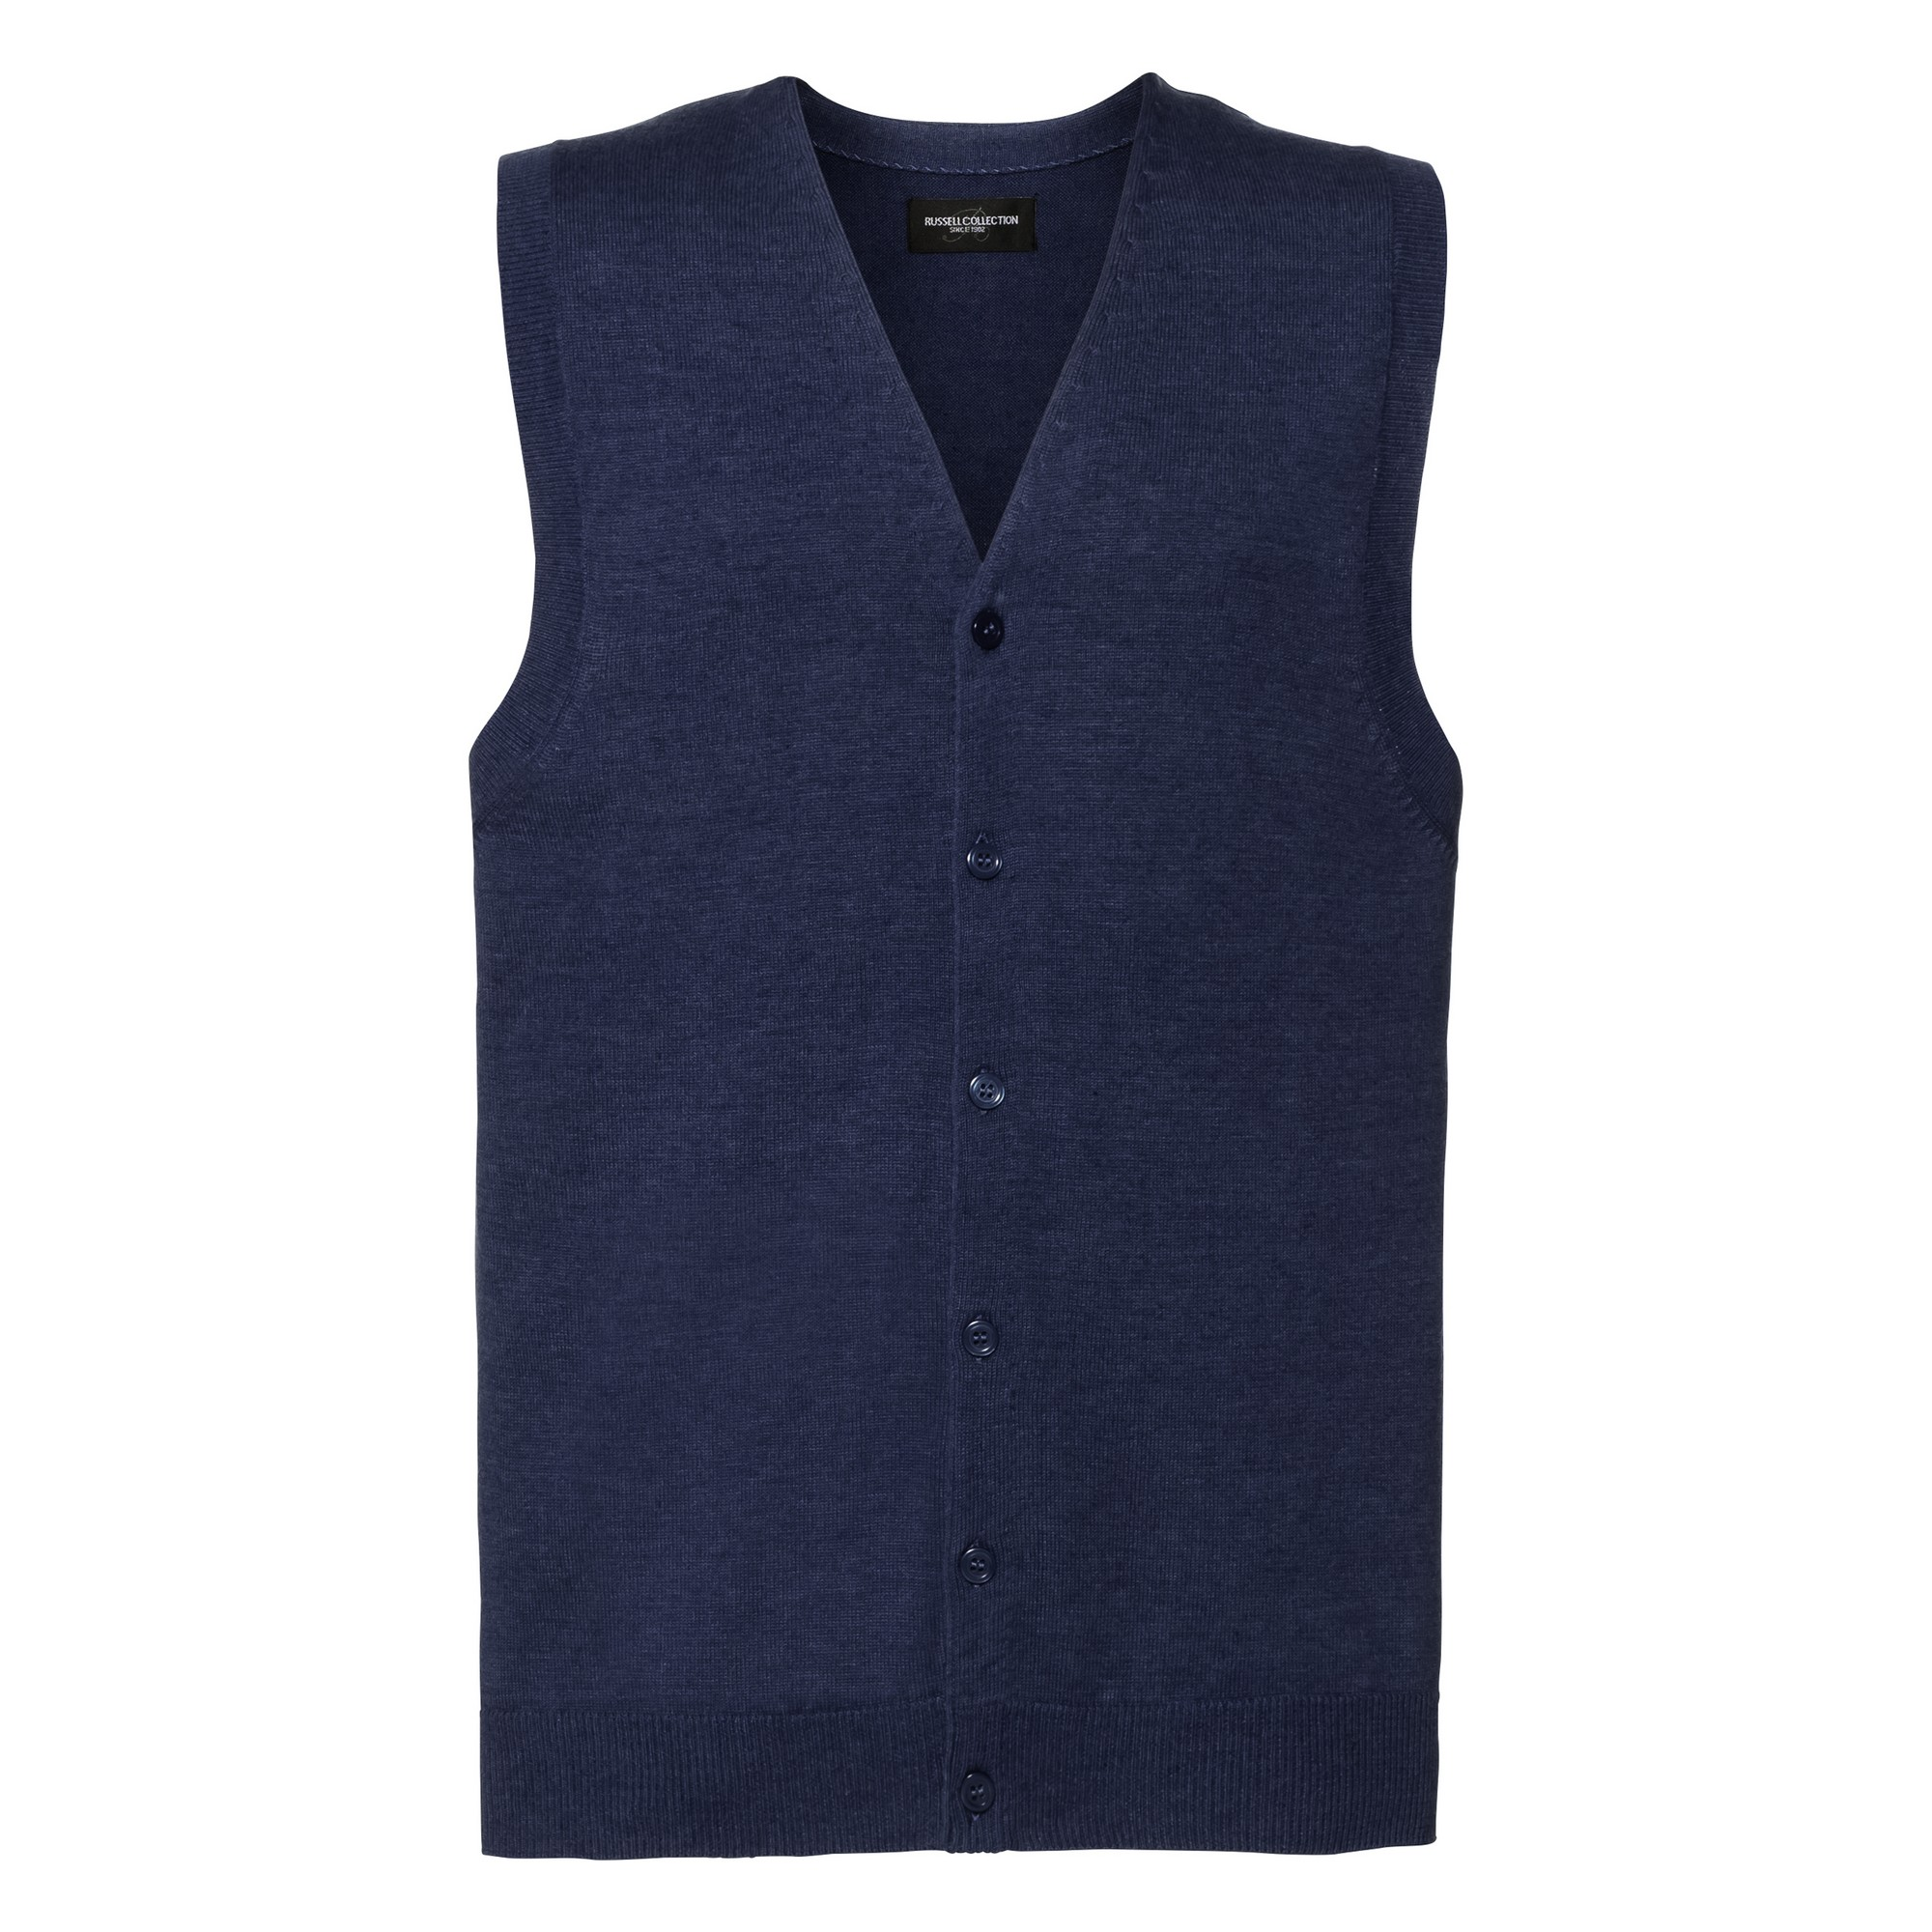 Russell Collection Mens V-neck Sleeveless Knitted Cardigan (3XL) (Denim Marl)